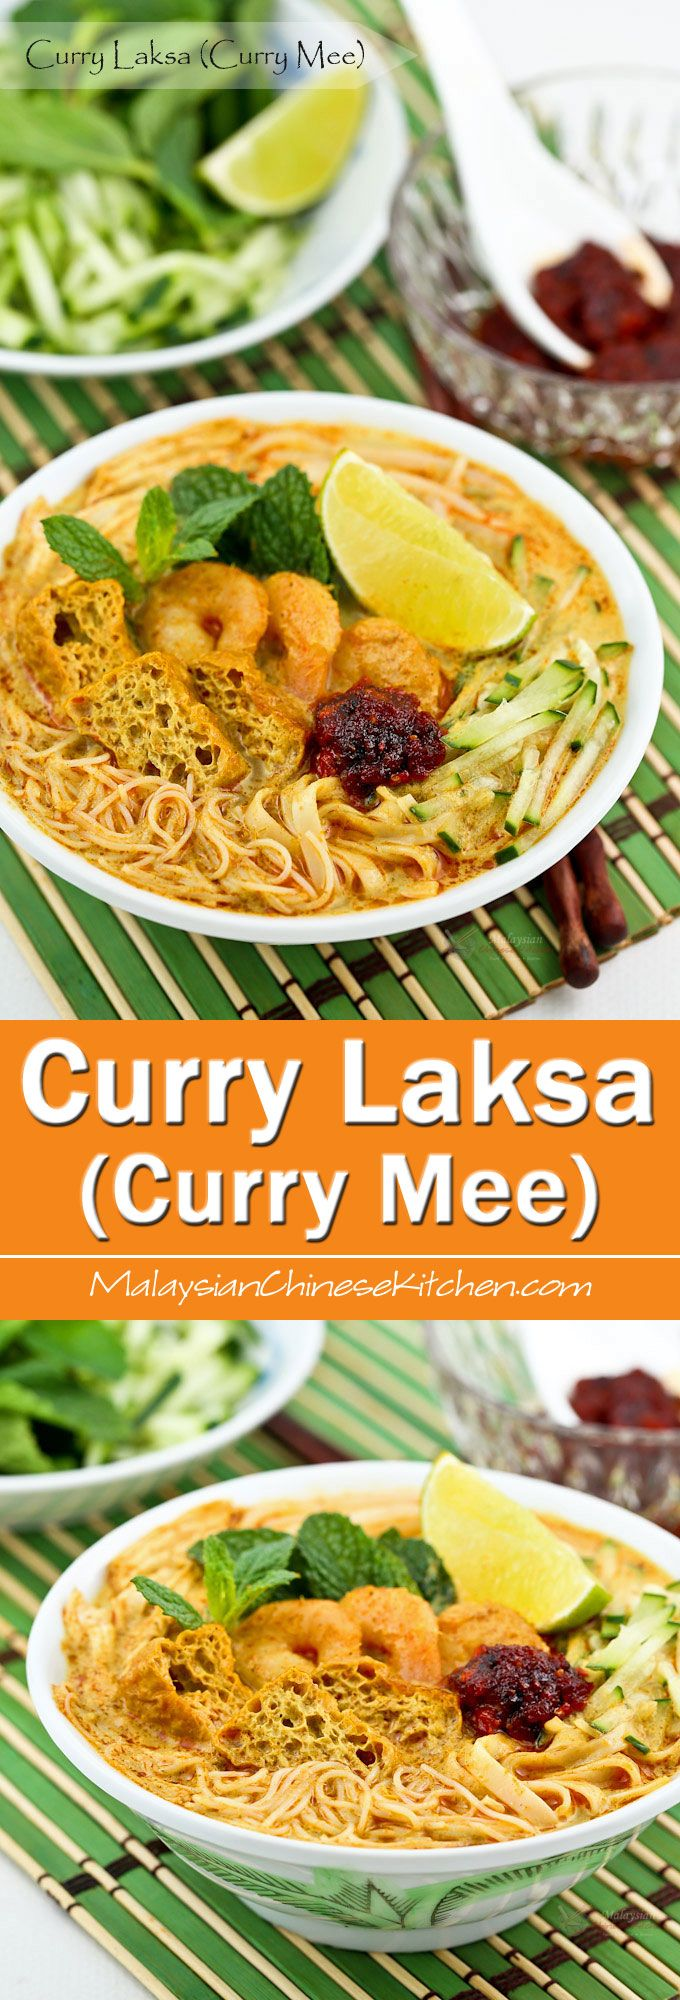 Curry Laksa (Curry Mee) is a delicious spicy curried noodle soup with a variety of toppings. This is my family's version found mainly in the Klang…